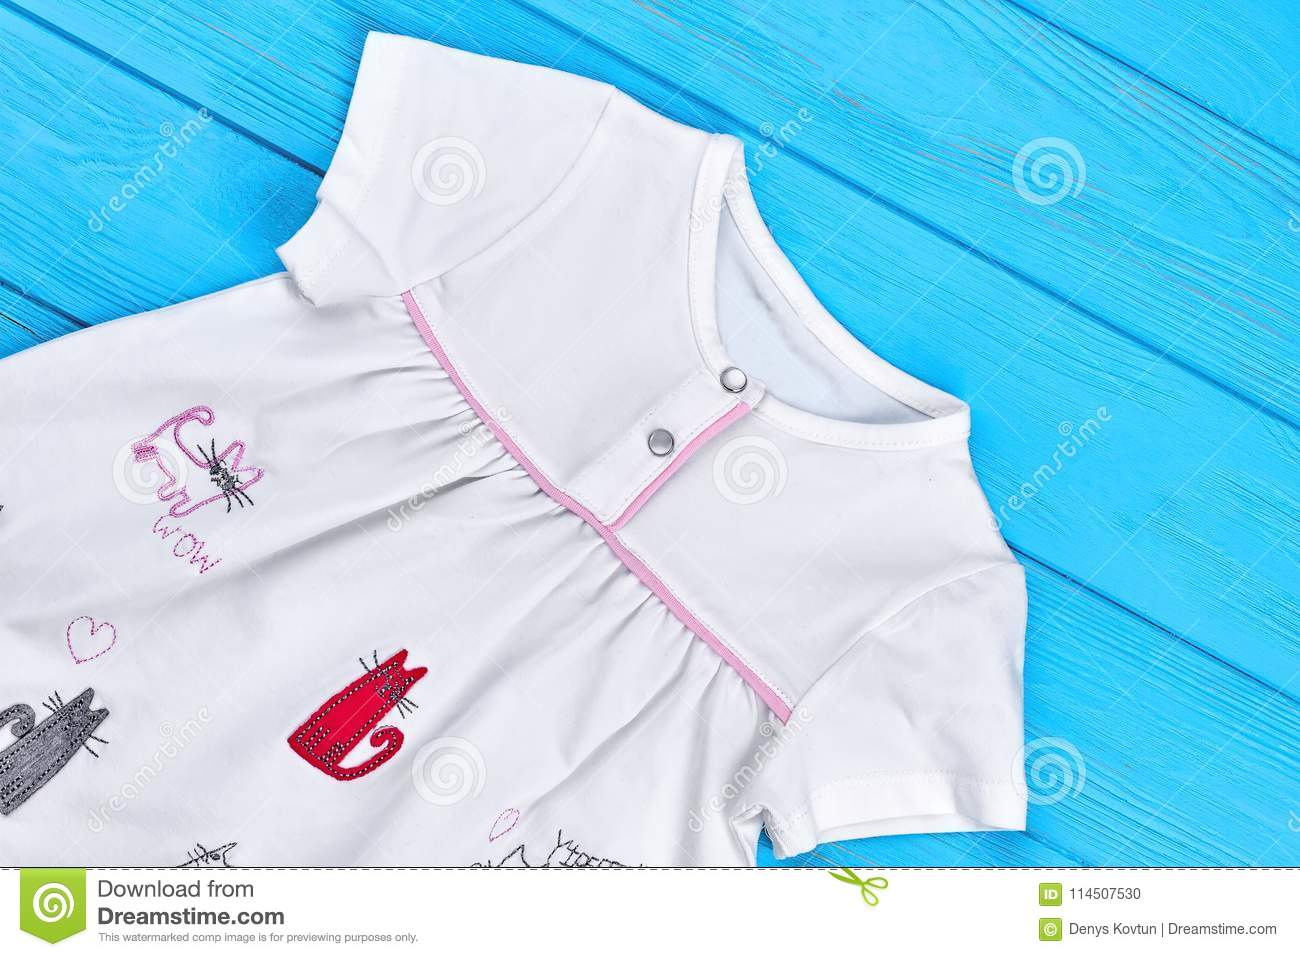 Cat Cartoon Cotton Dress For Baby-girl. Stock Photo - Image of gown ...